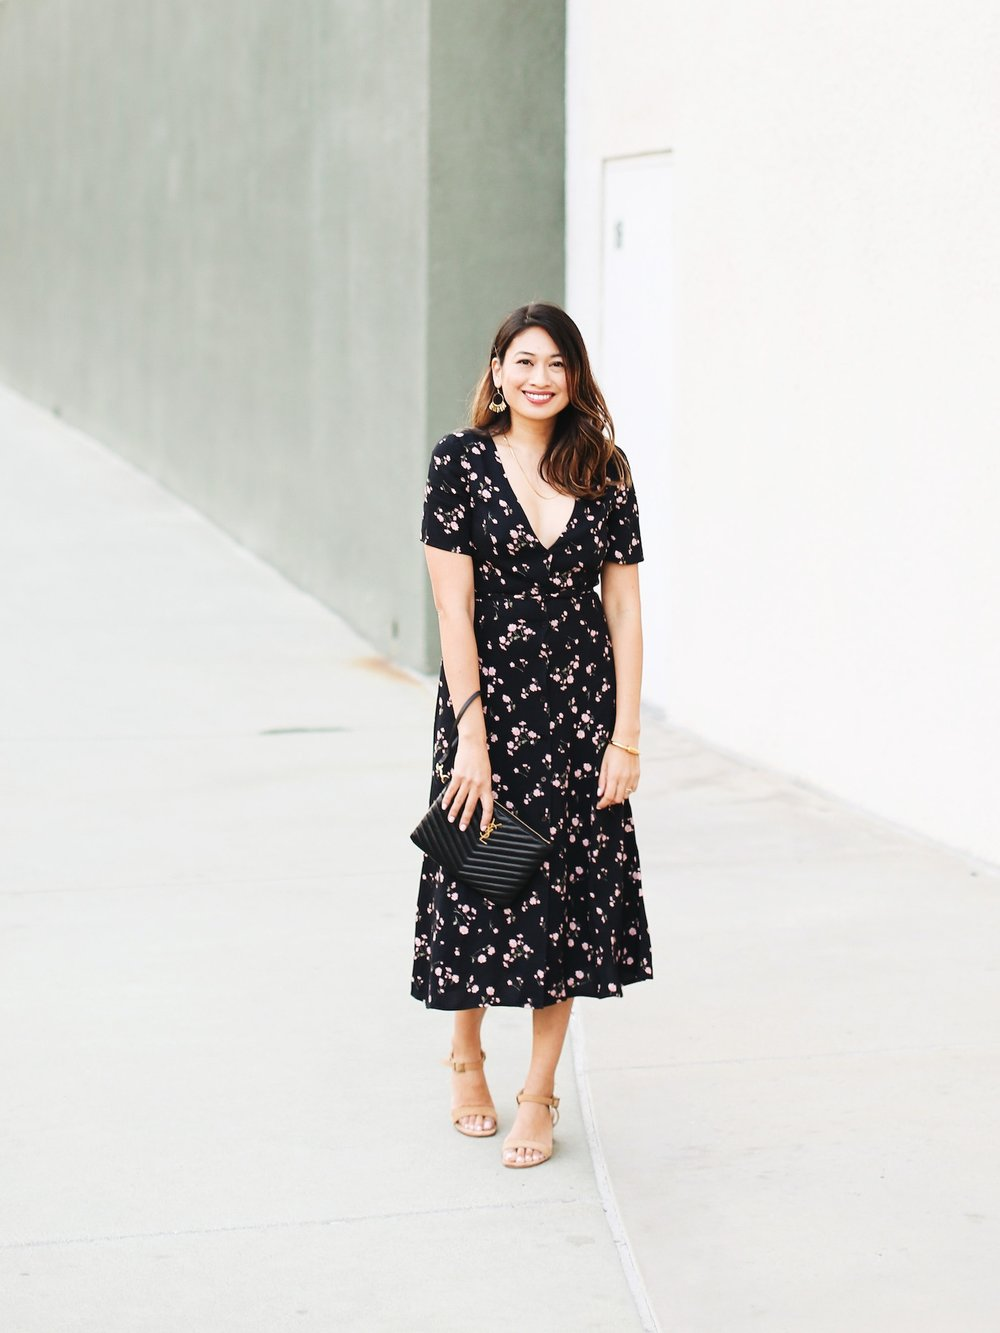 Date night outfit | A Week Of Polished & Professional Outfits With Sustainable Lifestyle Blogger Jonilyn Brown on The Good Trade